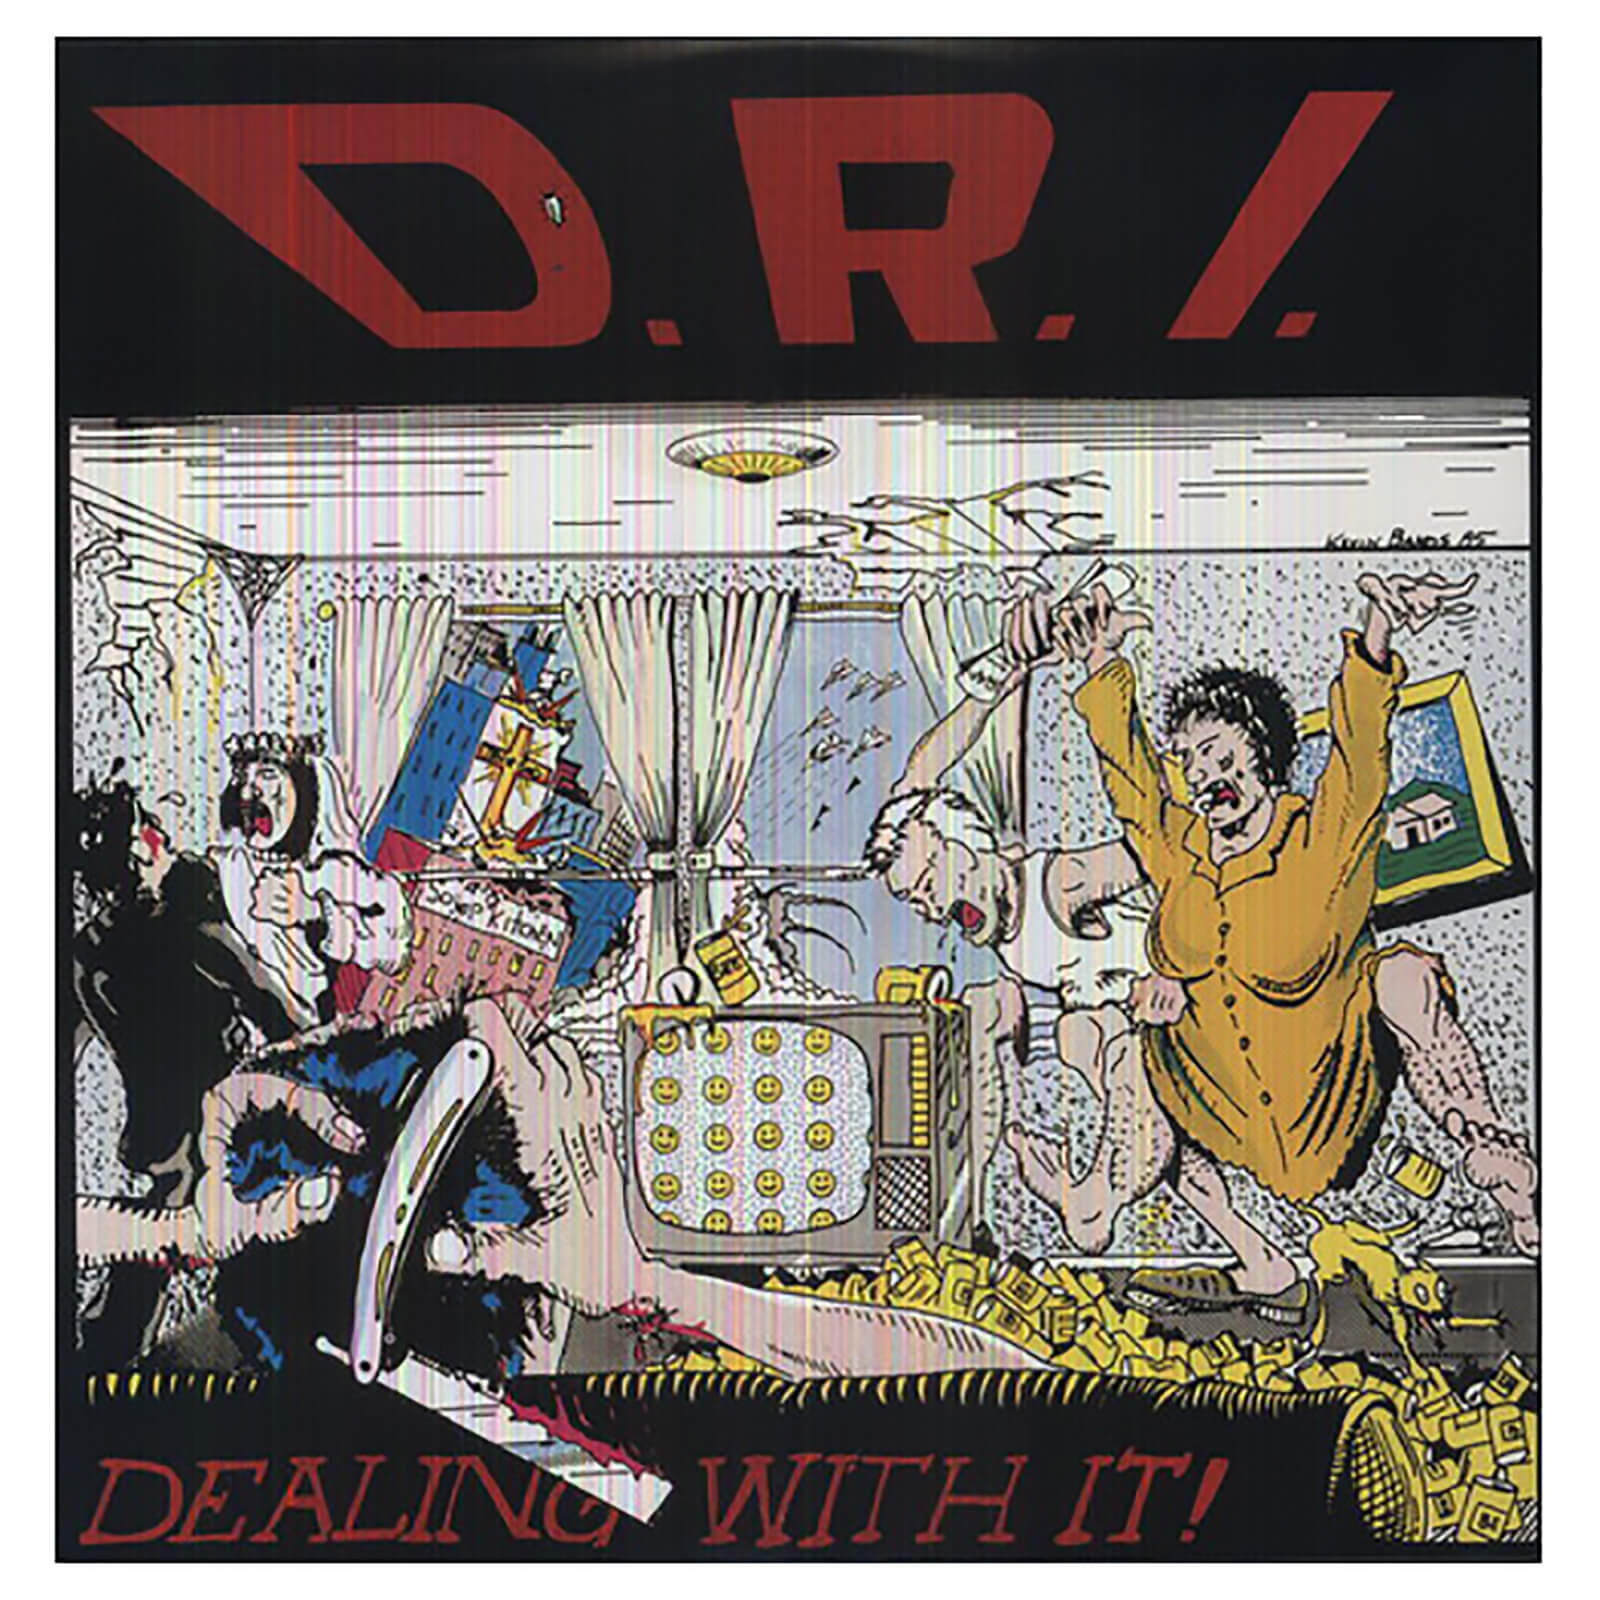 Dri - Dealing With It - Vinyl